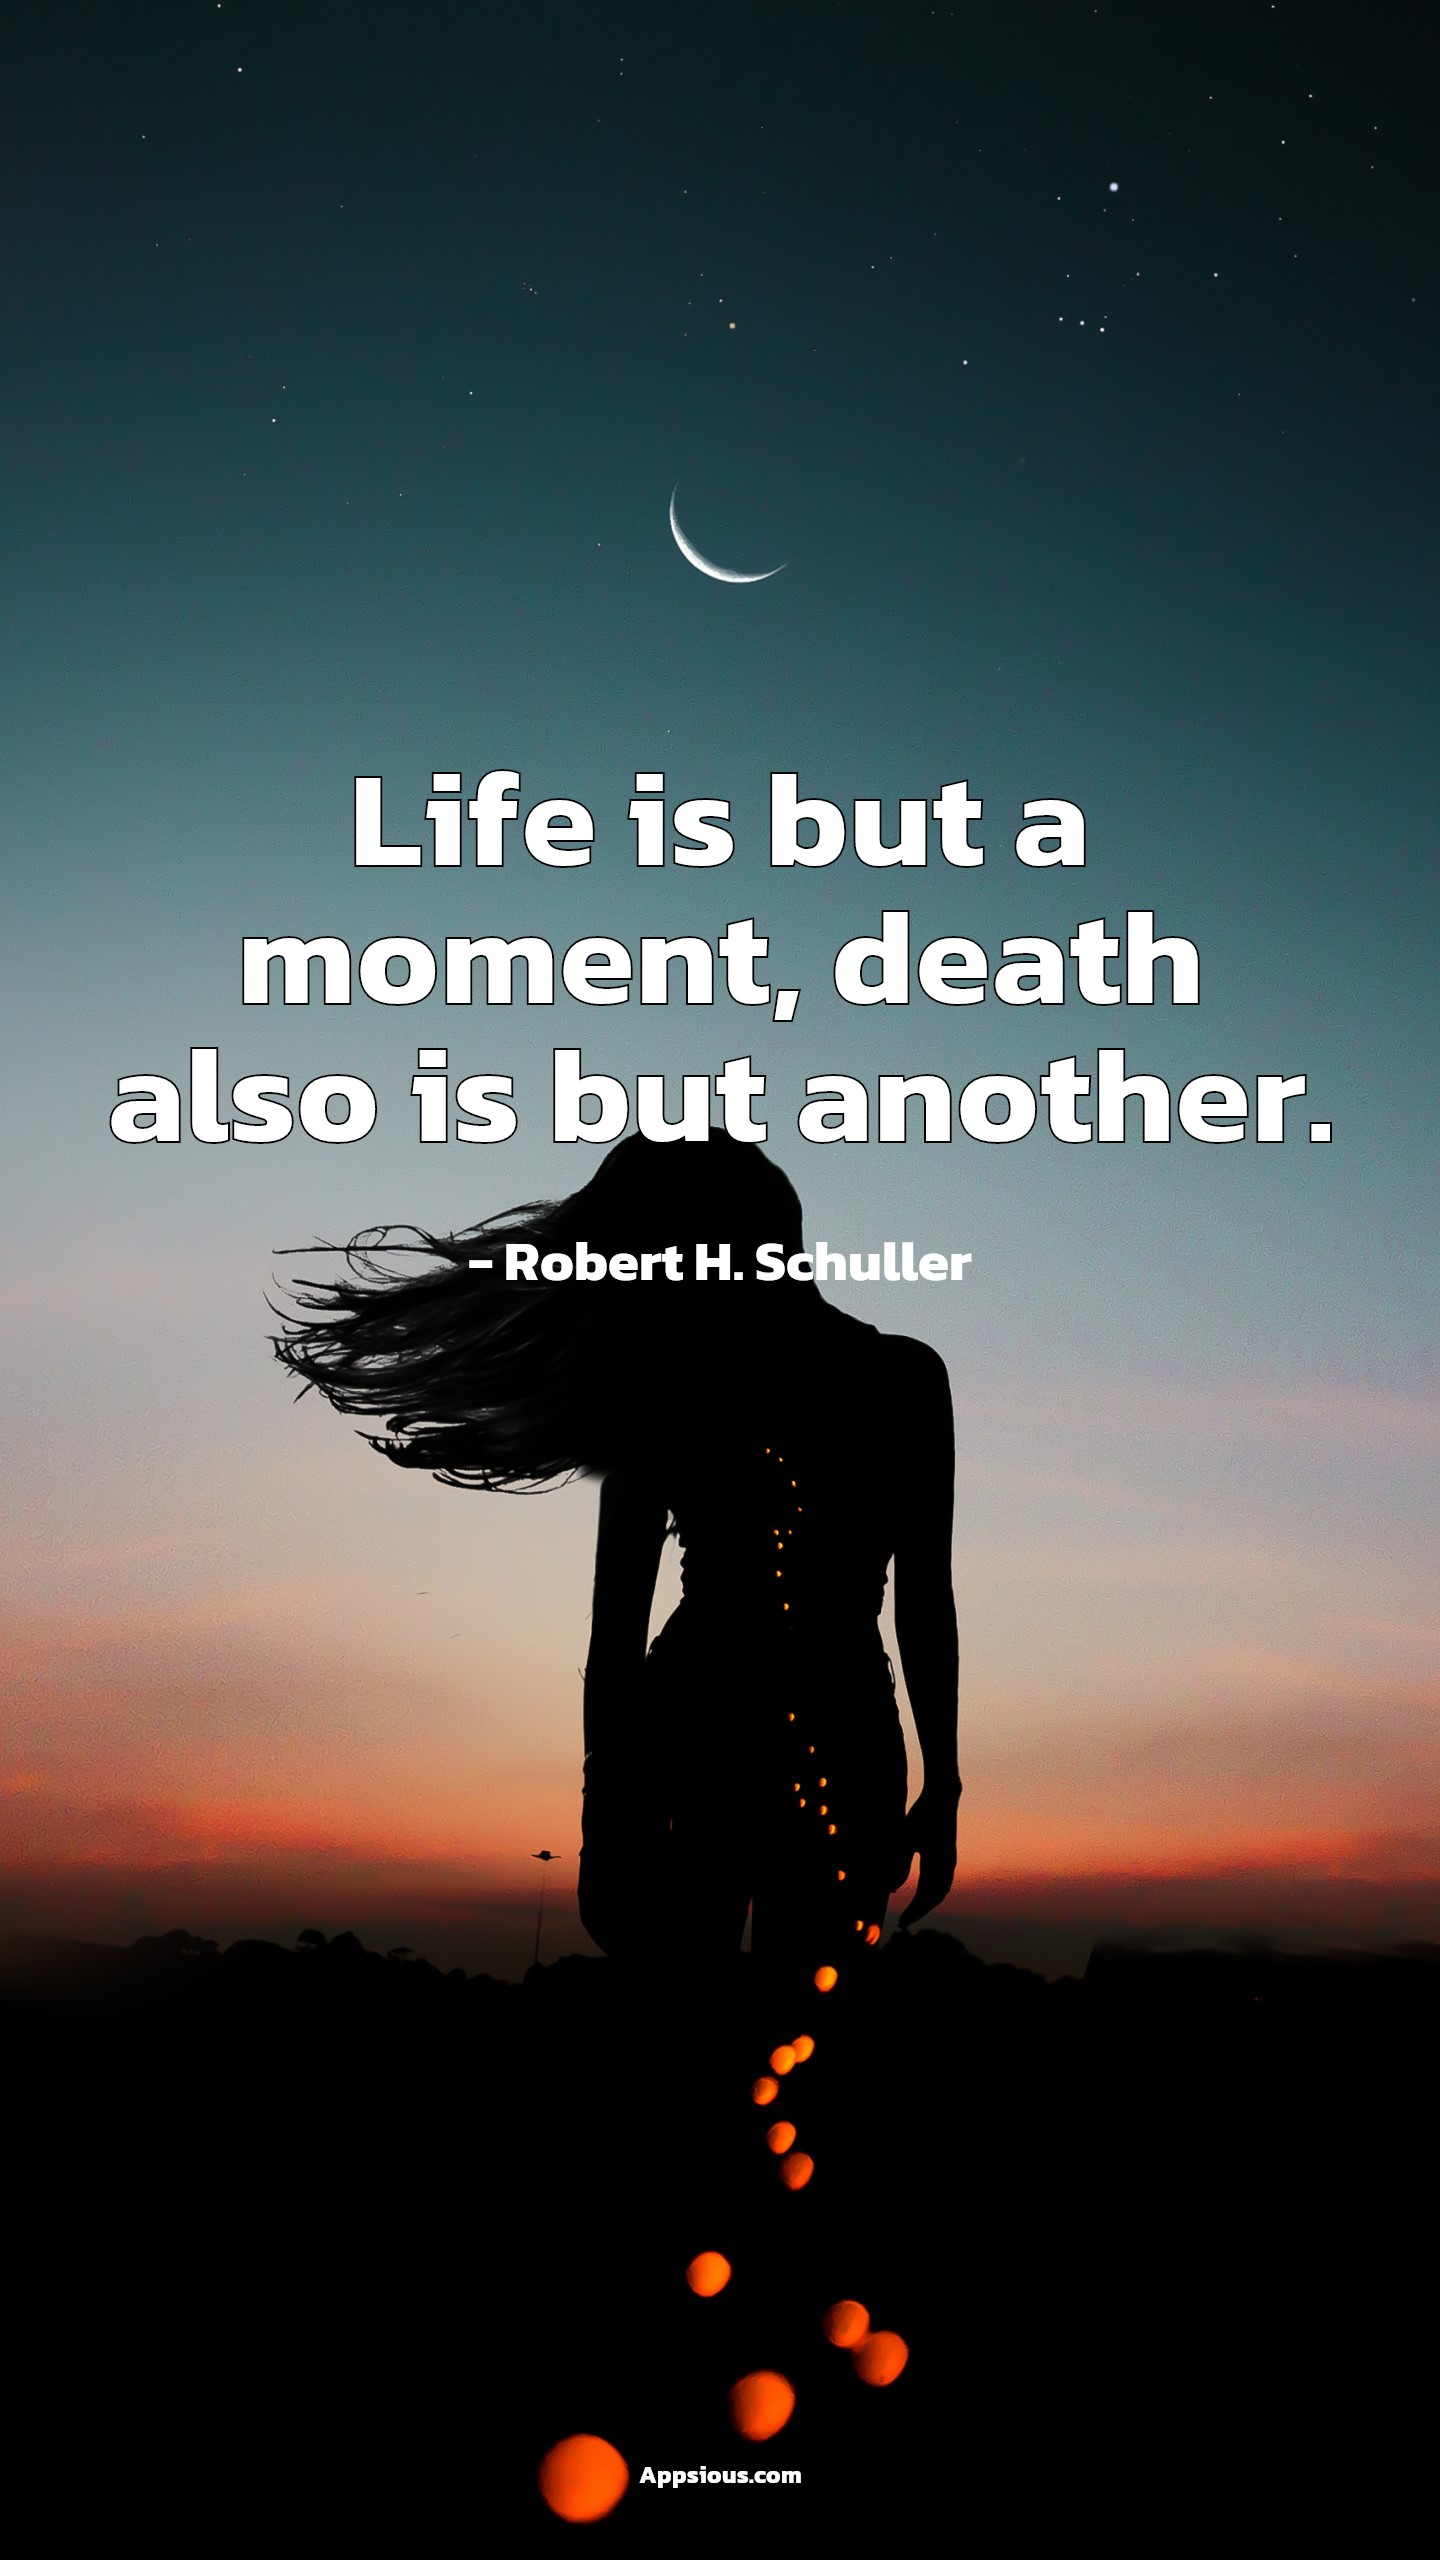 Life is but a moment, death also is but another.